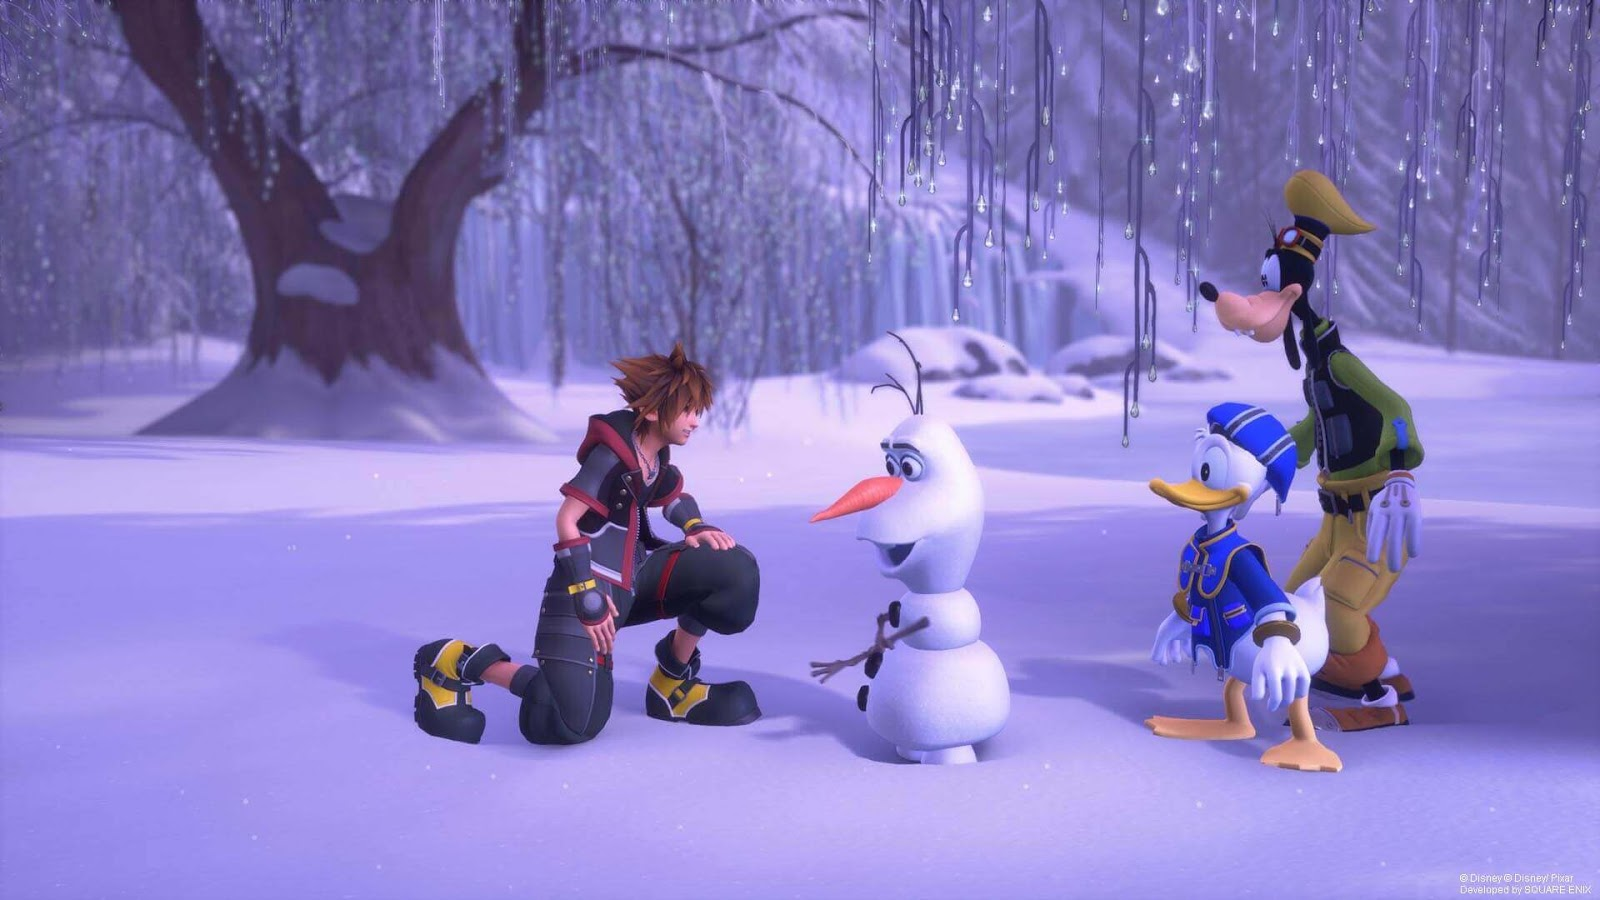 Square Enix Unveils A New Kingdom Hearts III Trailer, Finally Completed The Development